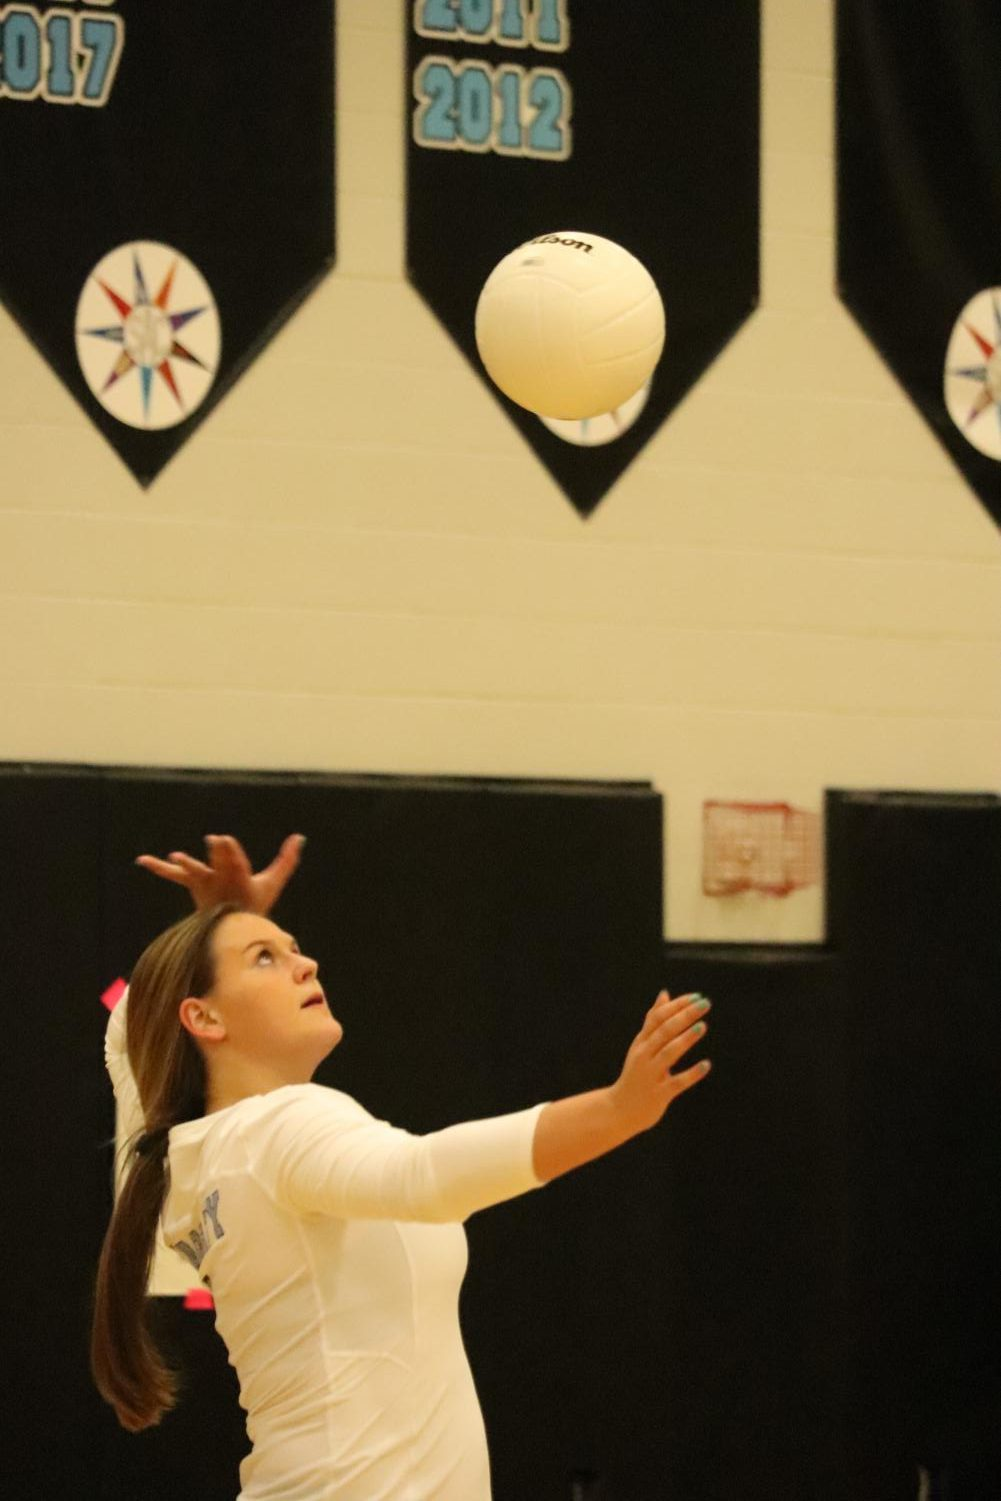 Senior hitter Morgan Roman delivering a serve in the third set. With 9 kills, she helped her team to a 3-0 victory.